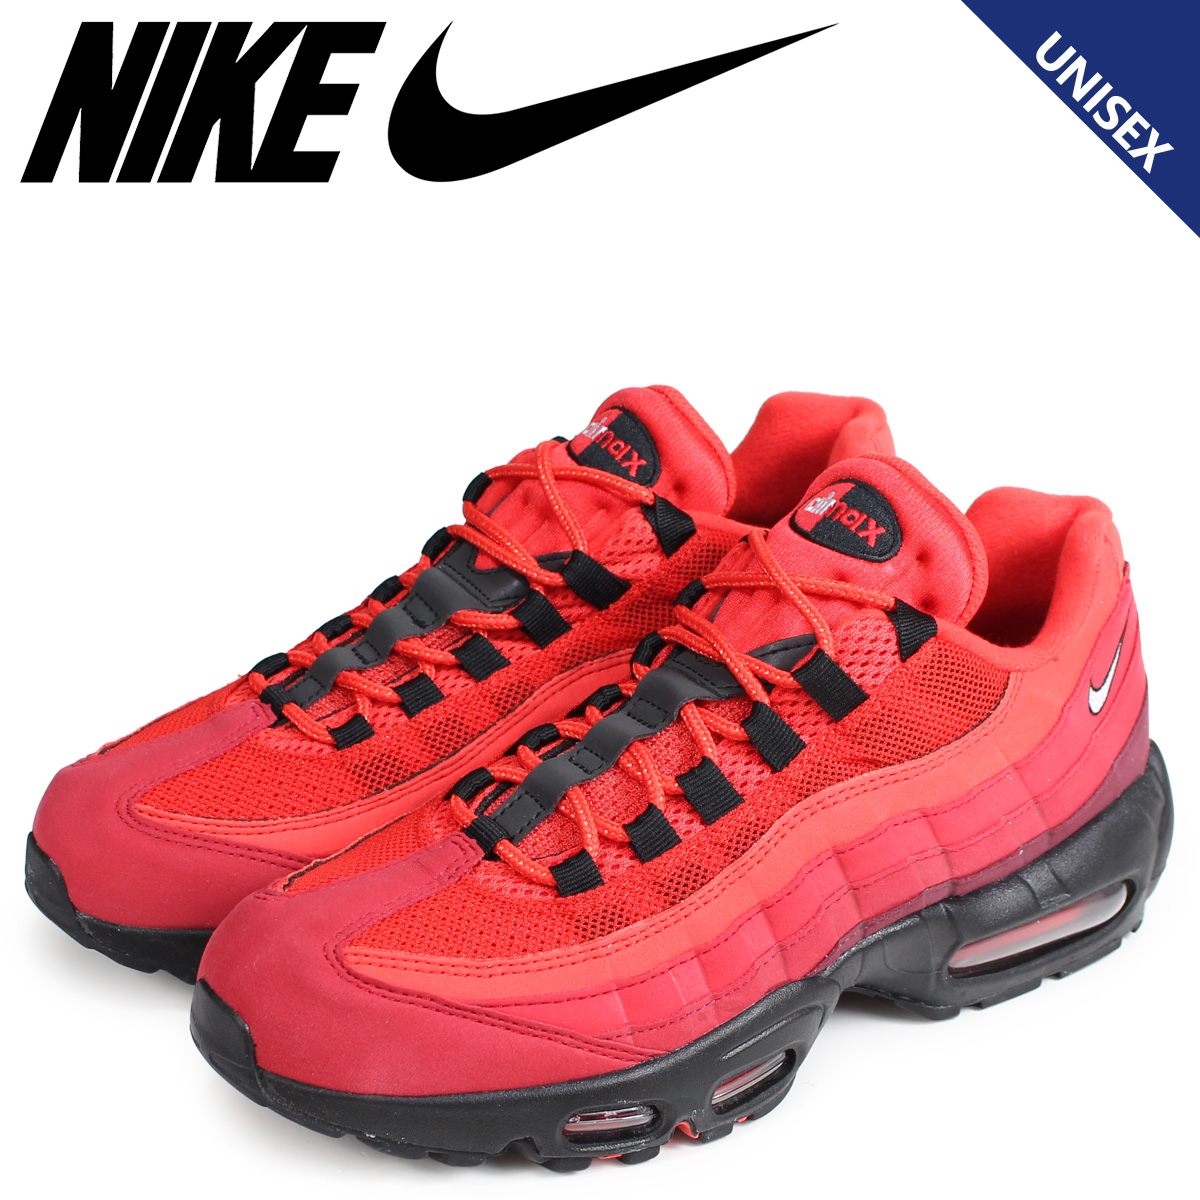 best sneakers ea335 ac739 NIKE Kie Ney AMAX 95 sneakers men gap Dis AIR MAX 95 OG red red AT2865-600  [the 8/23 additional arrival]